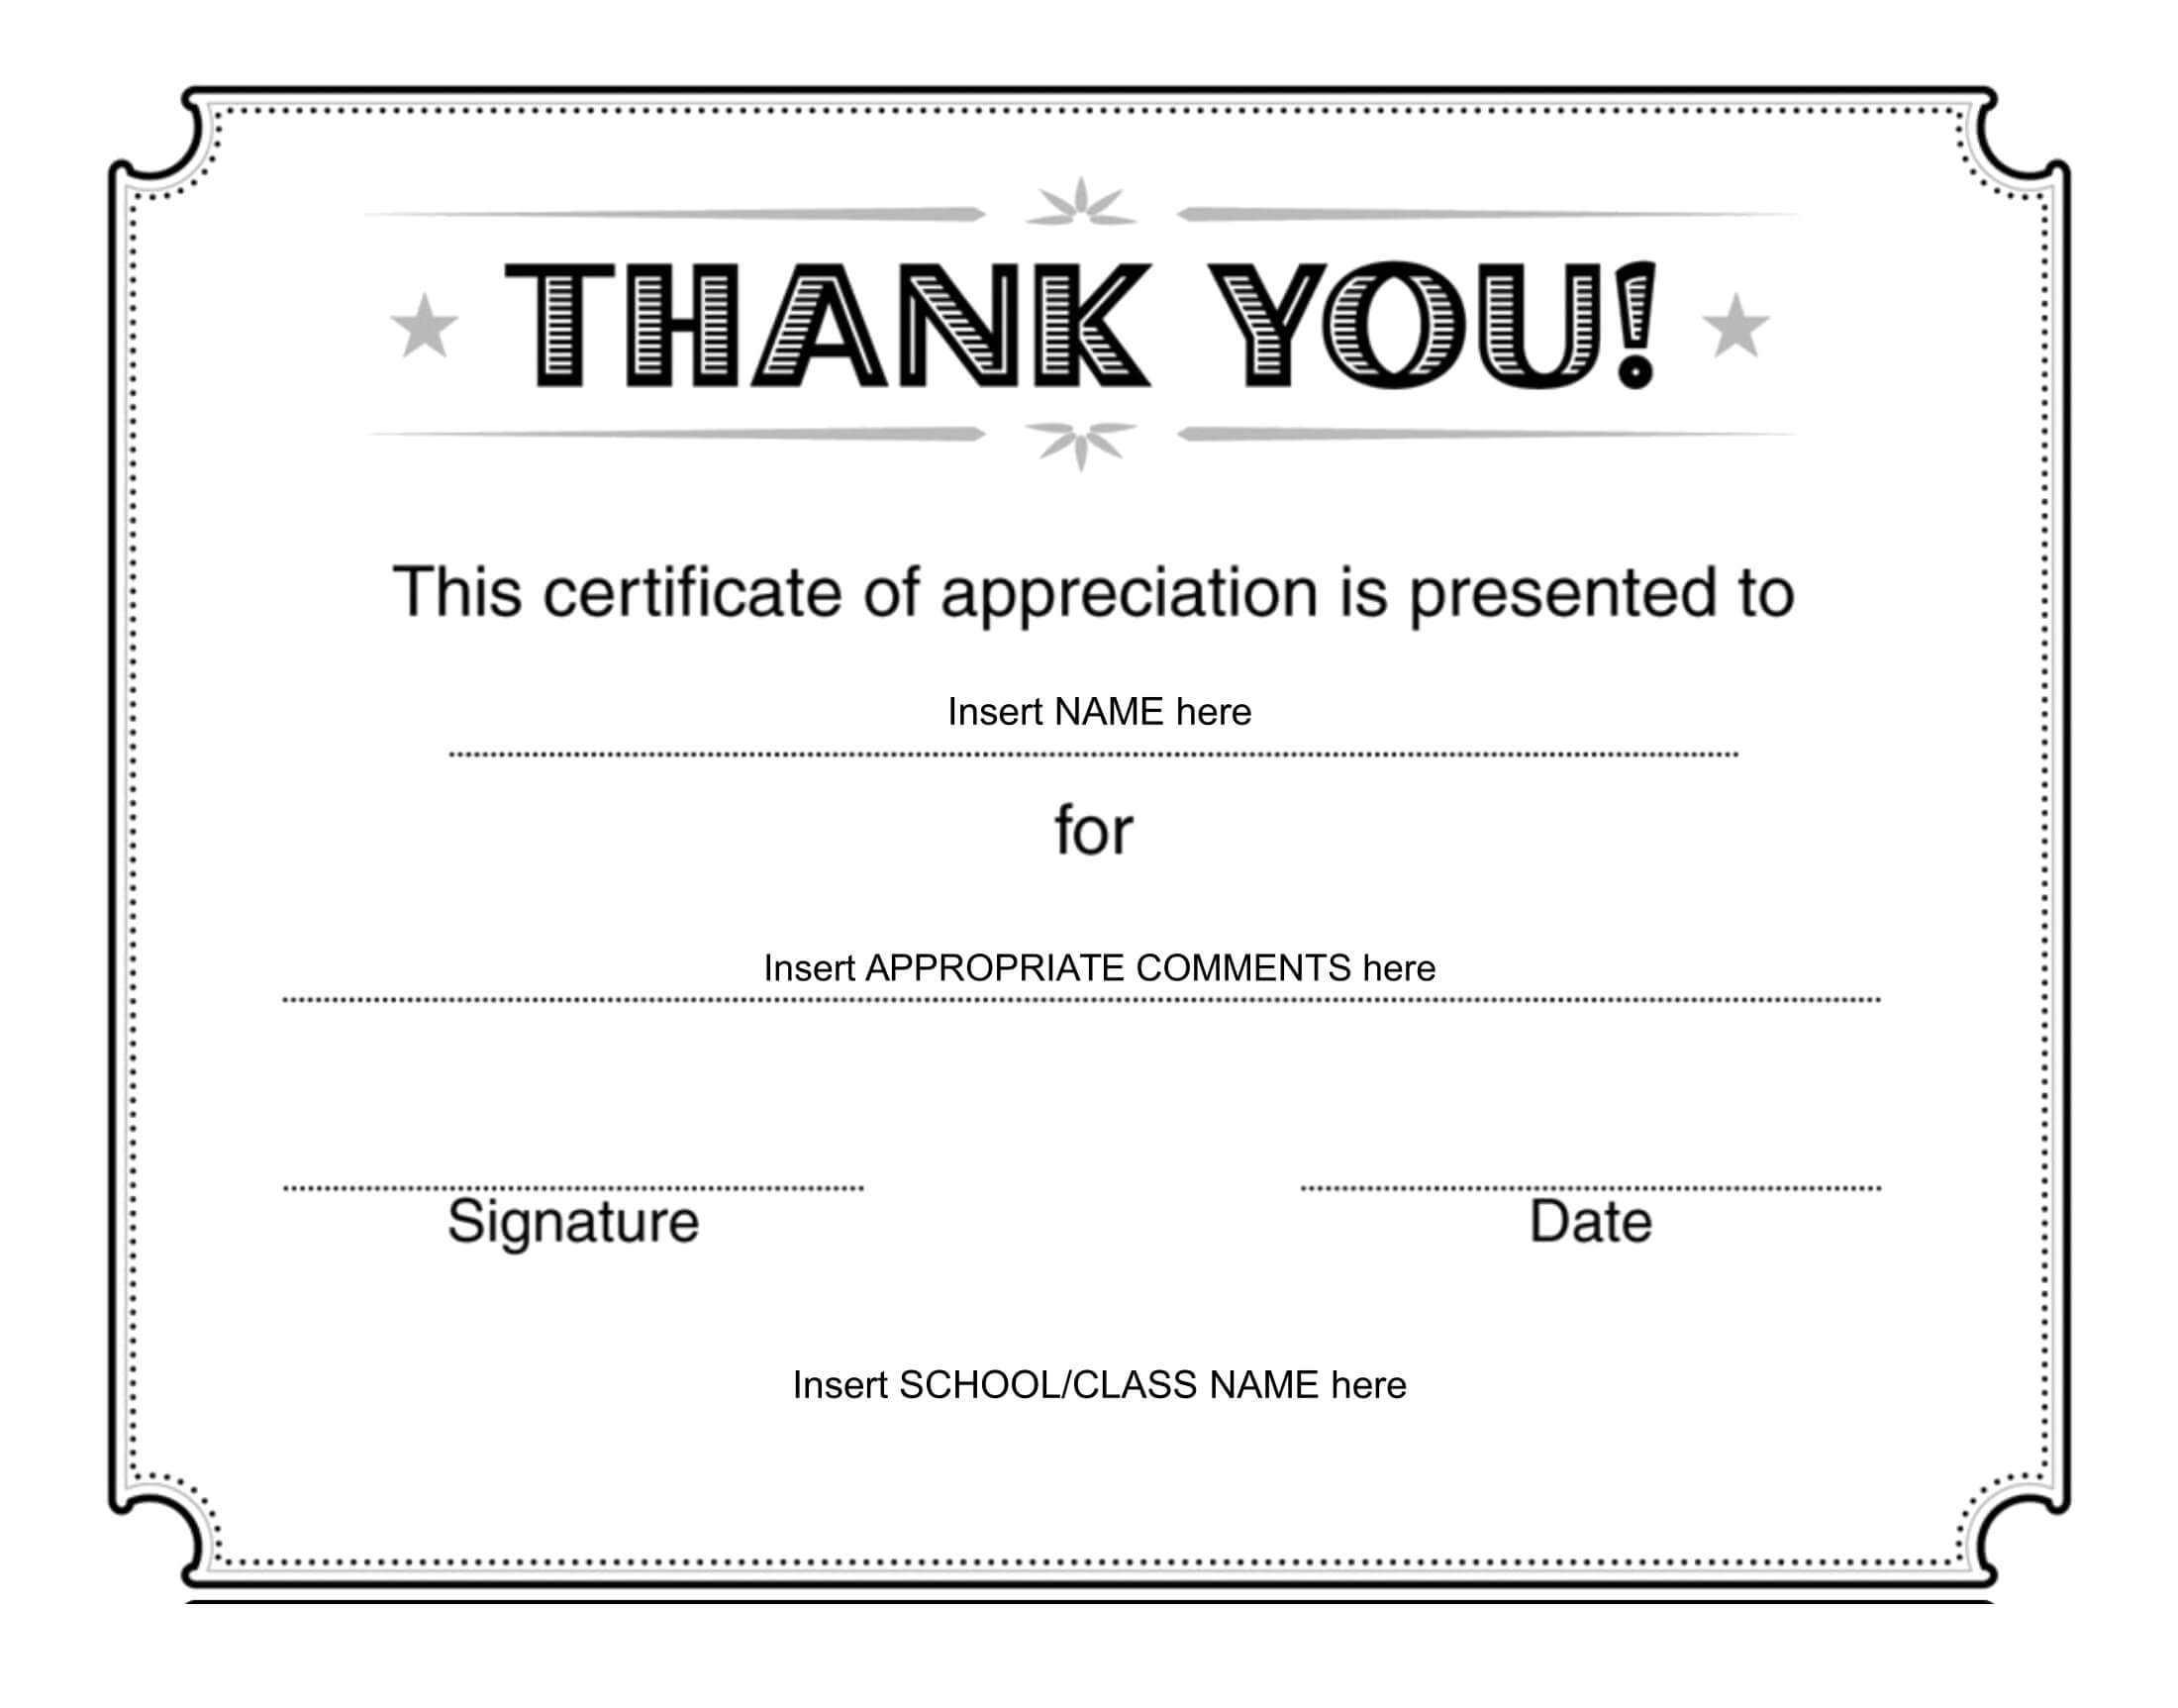 Thank You Certificate - Download Free Template In Farewell Certificate Template